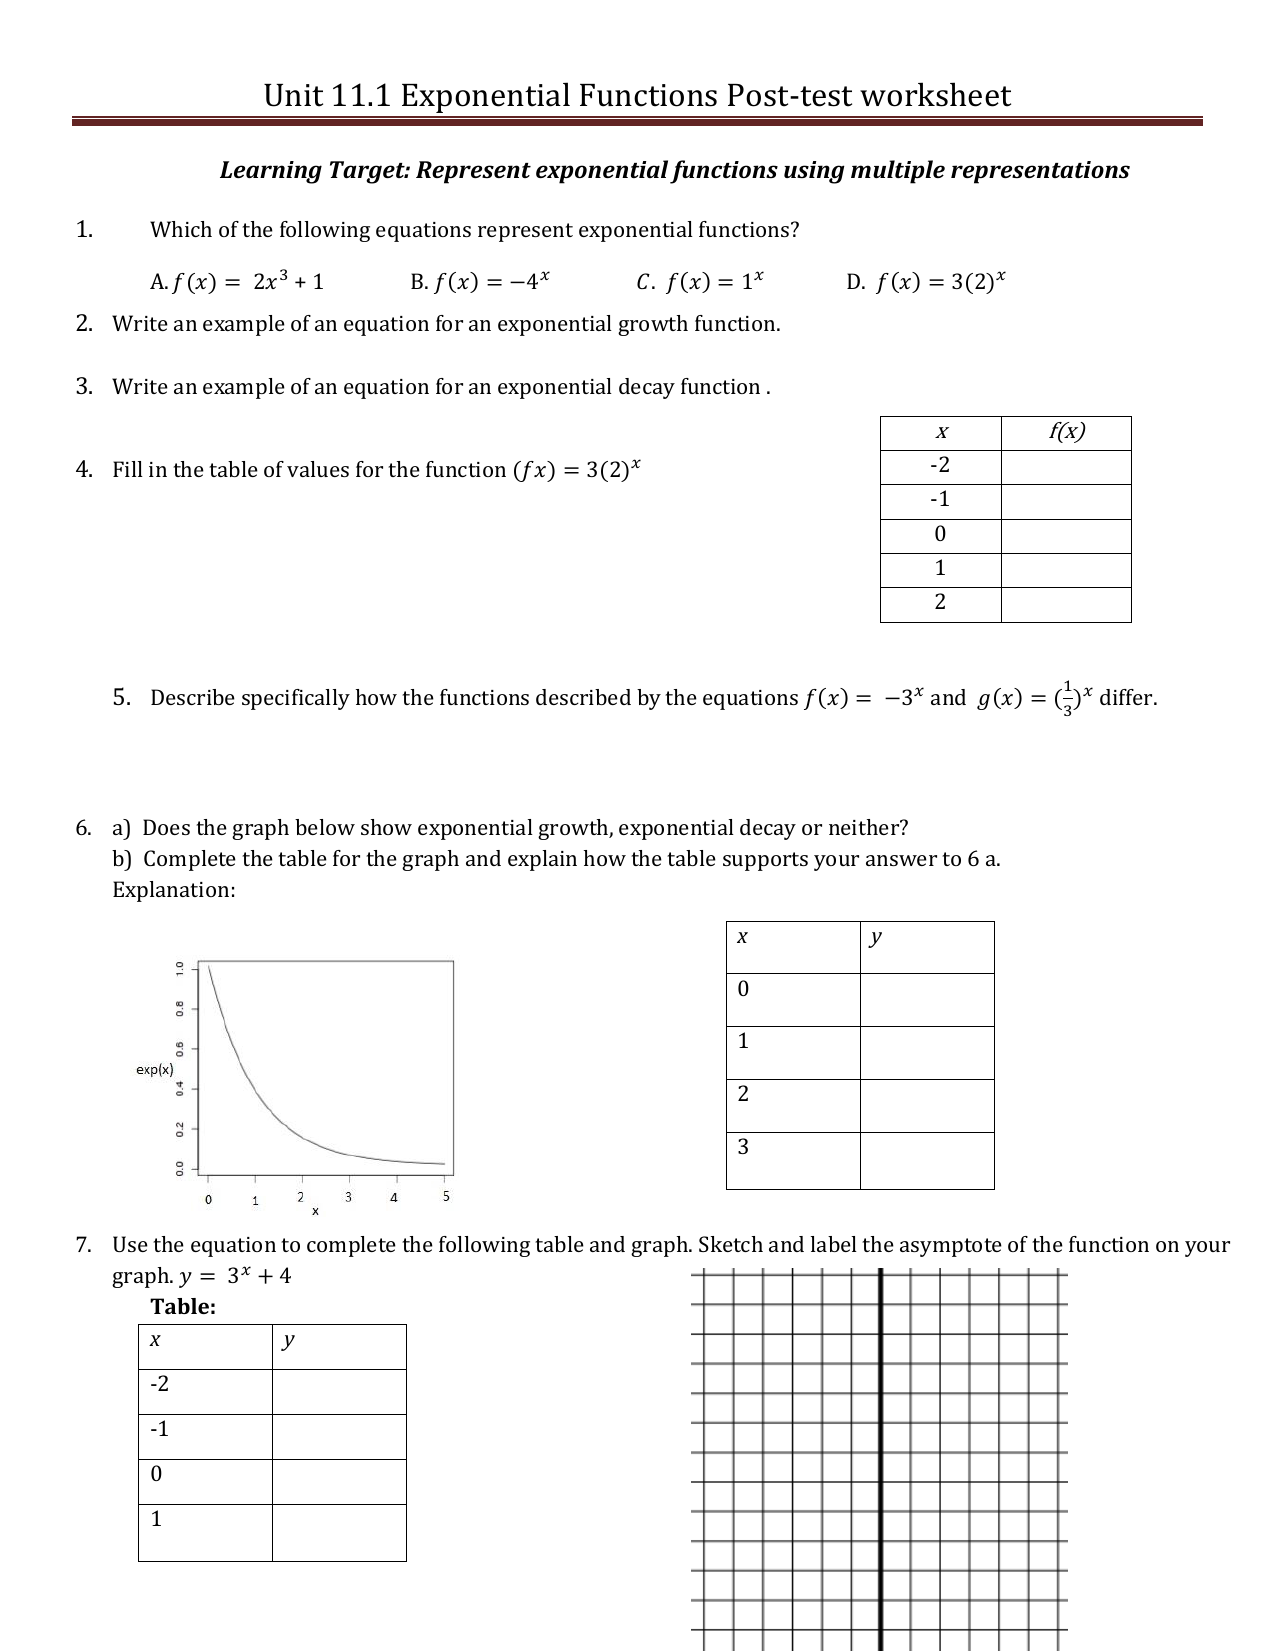 Unit 11.1 Exponential Functions Post